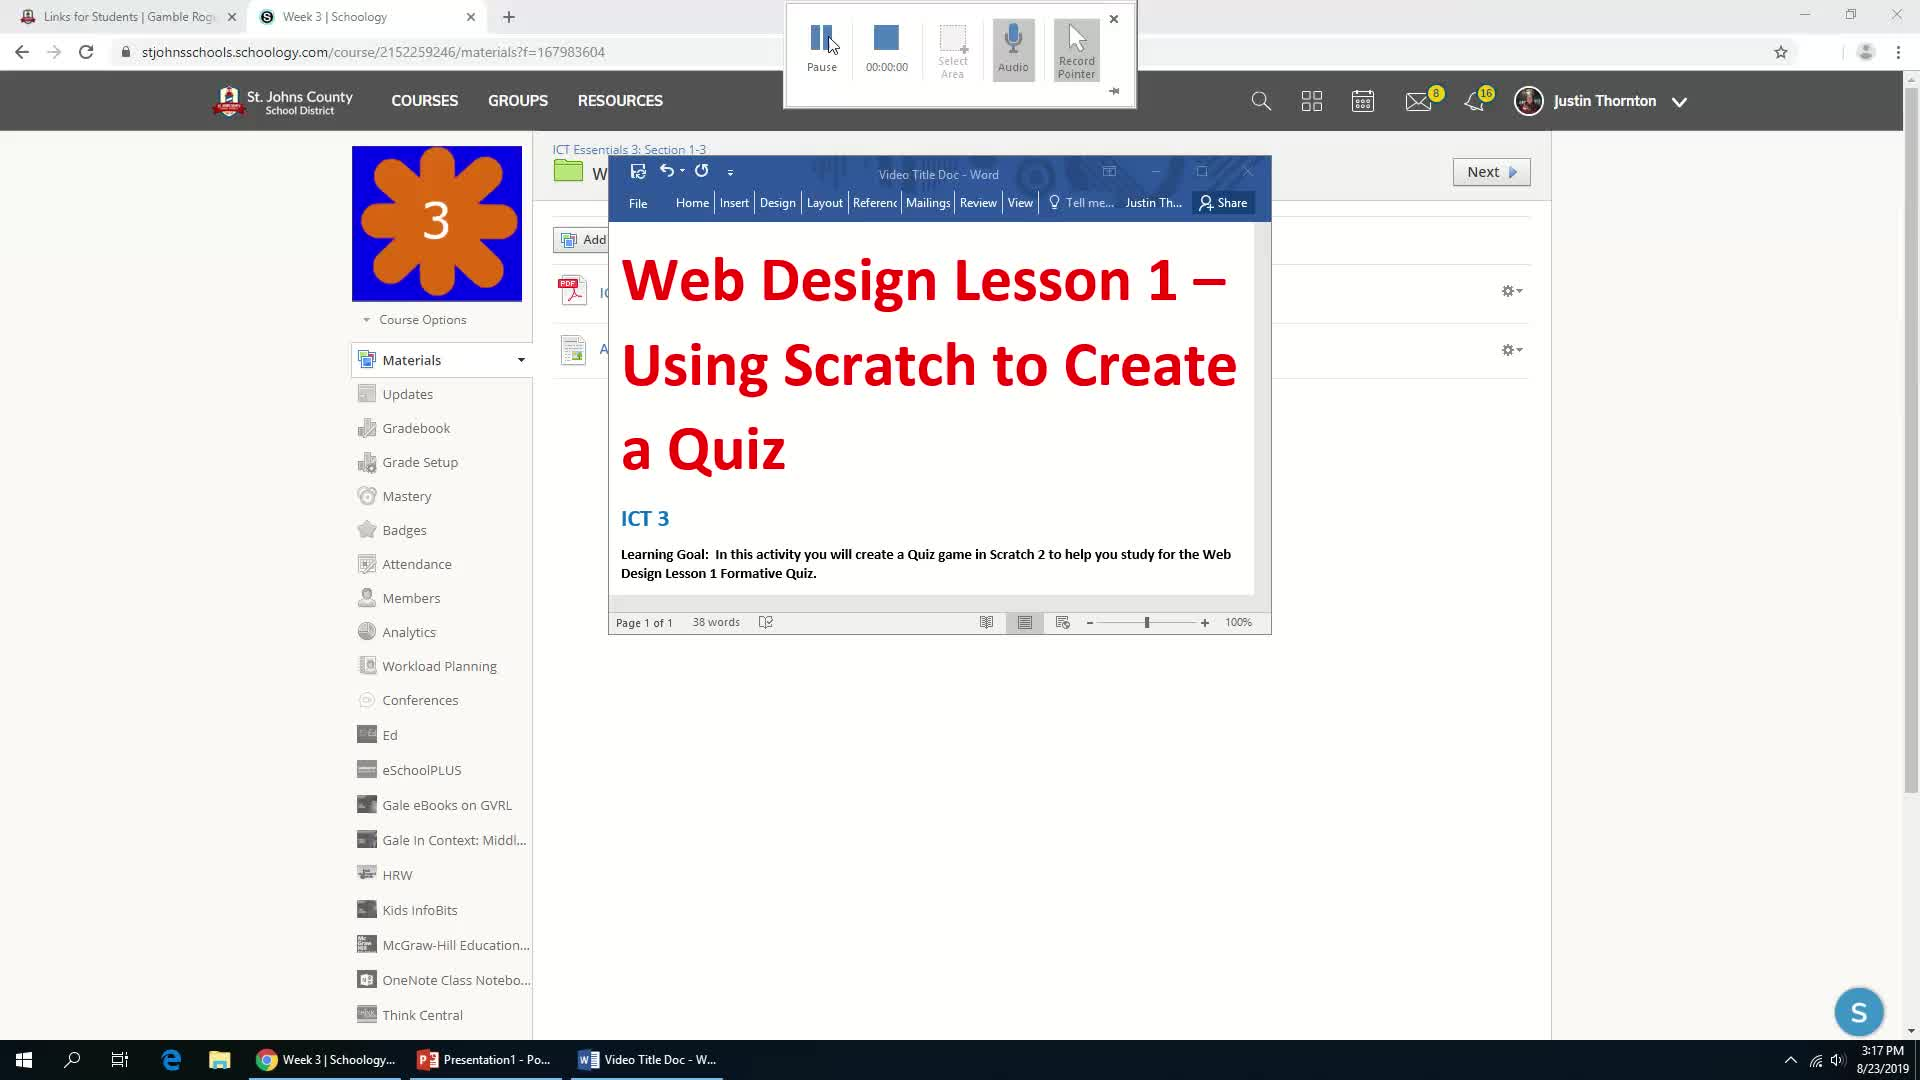 Assignment - Using Scratch 2 to Create a Quiz